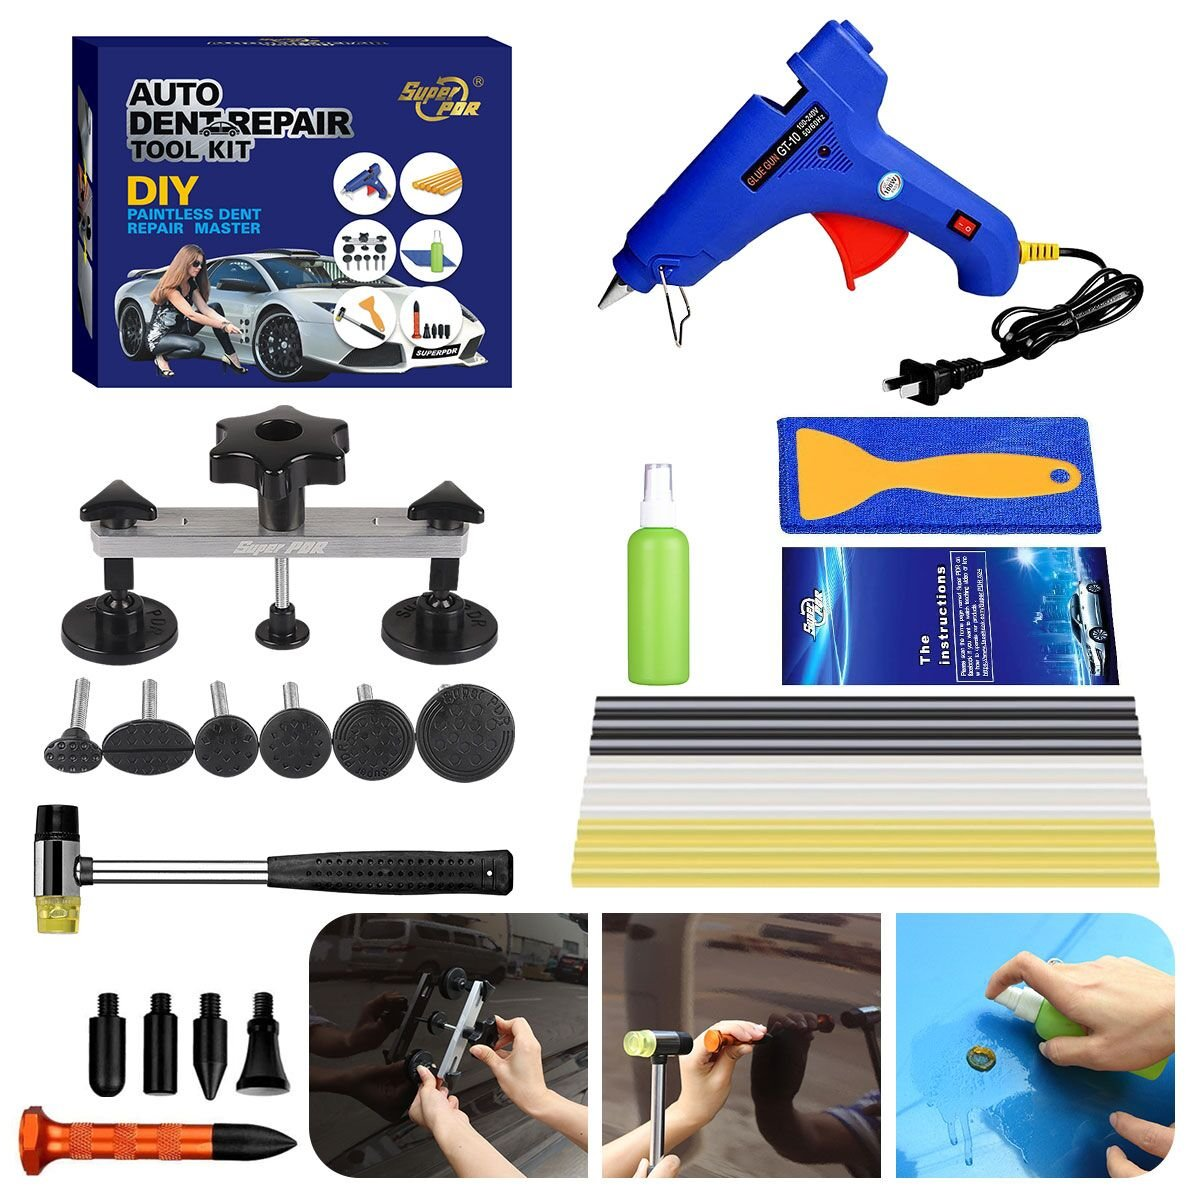 Fly5D 17Pcs Auto Body Paintless Dent Removal Tools Kit Pops a Dent Bridge Puller Kits with Tap Down Tools